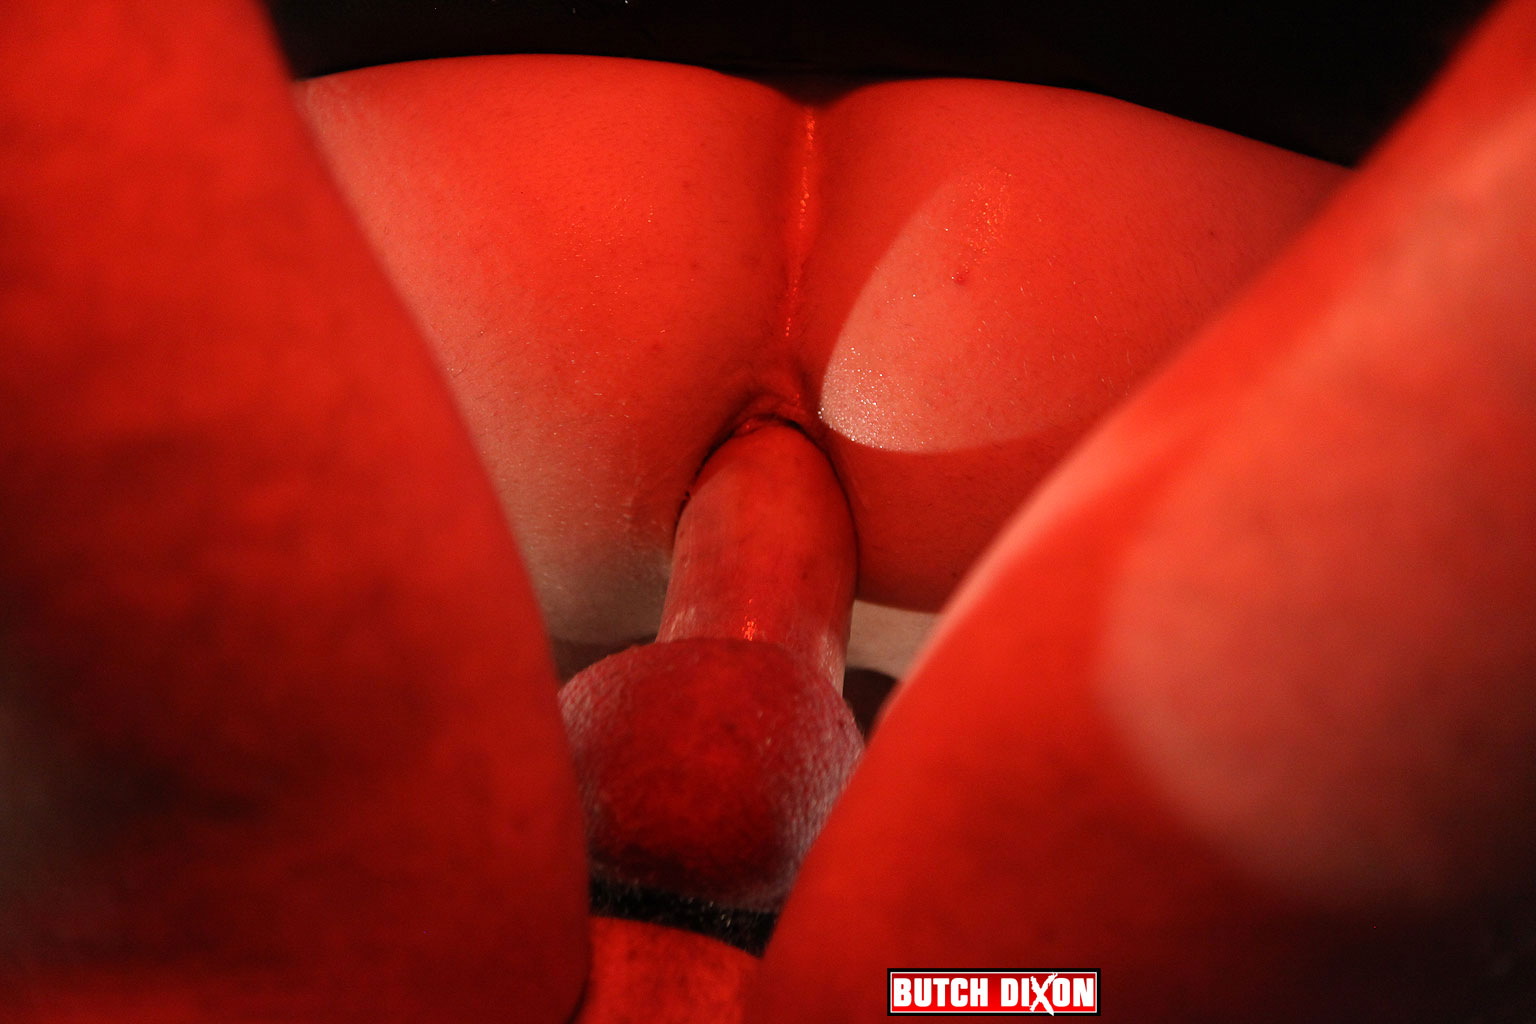 Butch Dixon Harley Everett and Diesel OGreen bareback 10 Amateur British Guys With Huge Uncut Cocks Fucking Bareback